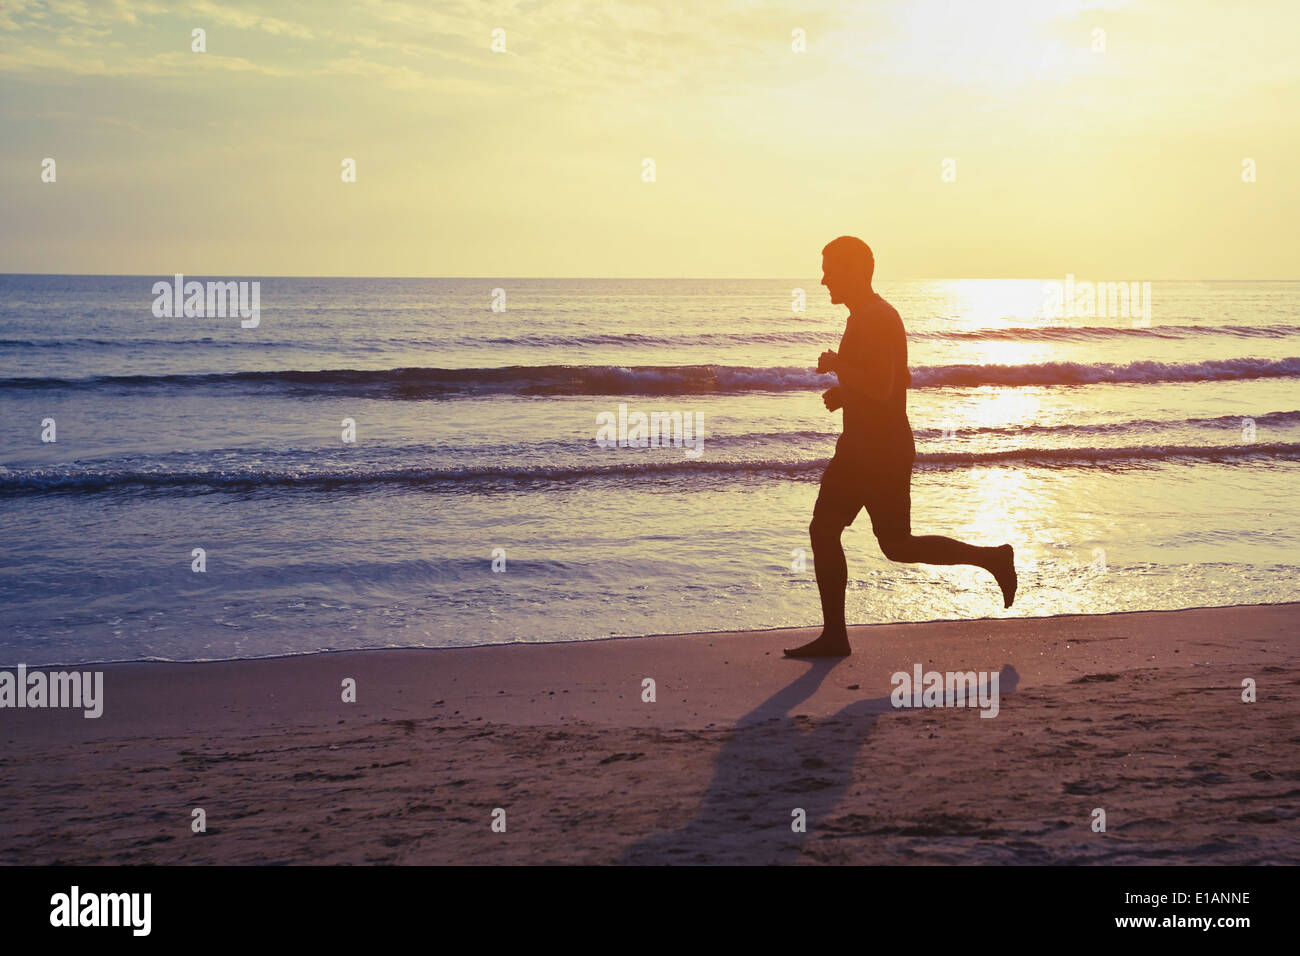 healthy lifestyle, silhouette of runner on the beach - Stock Image